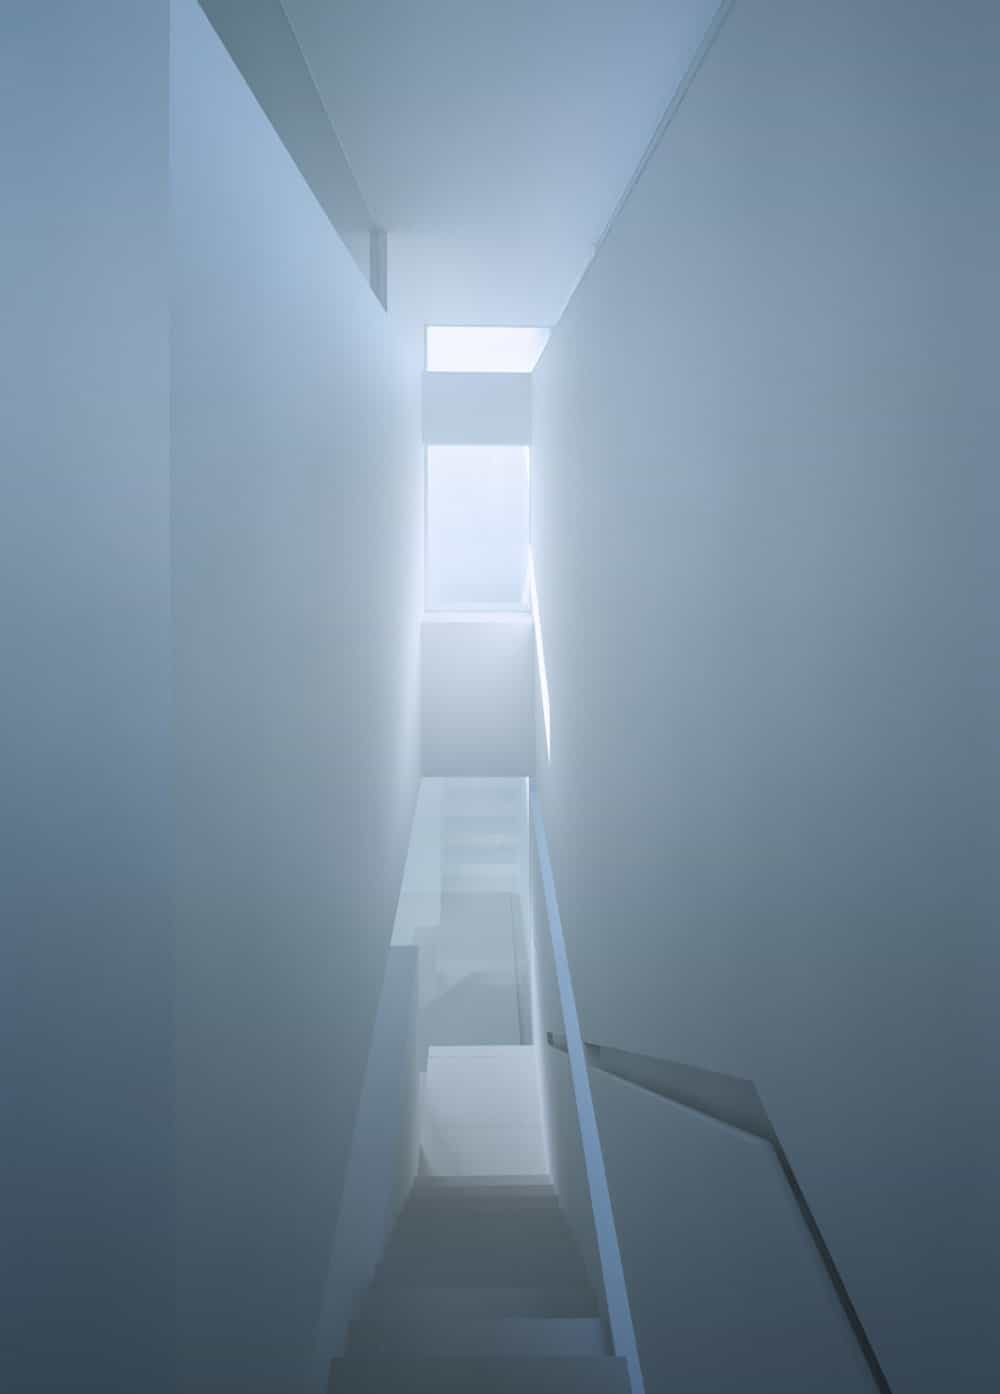 Staircase facing the glazed windows in the House in Takamatsu designed by Fujiwaramuro Architects.